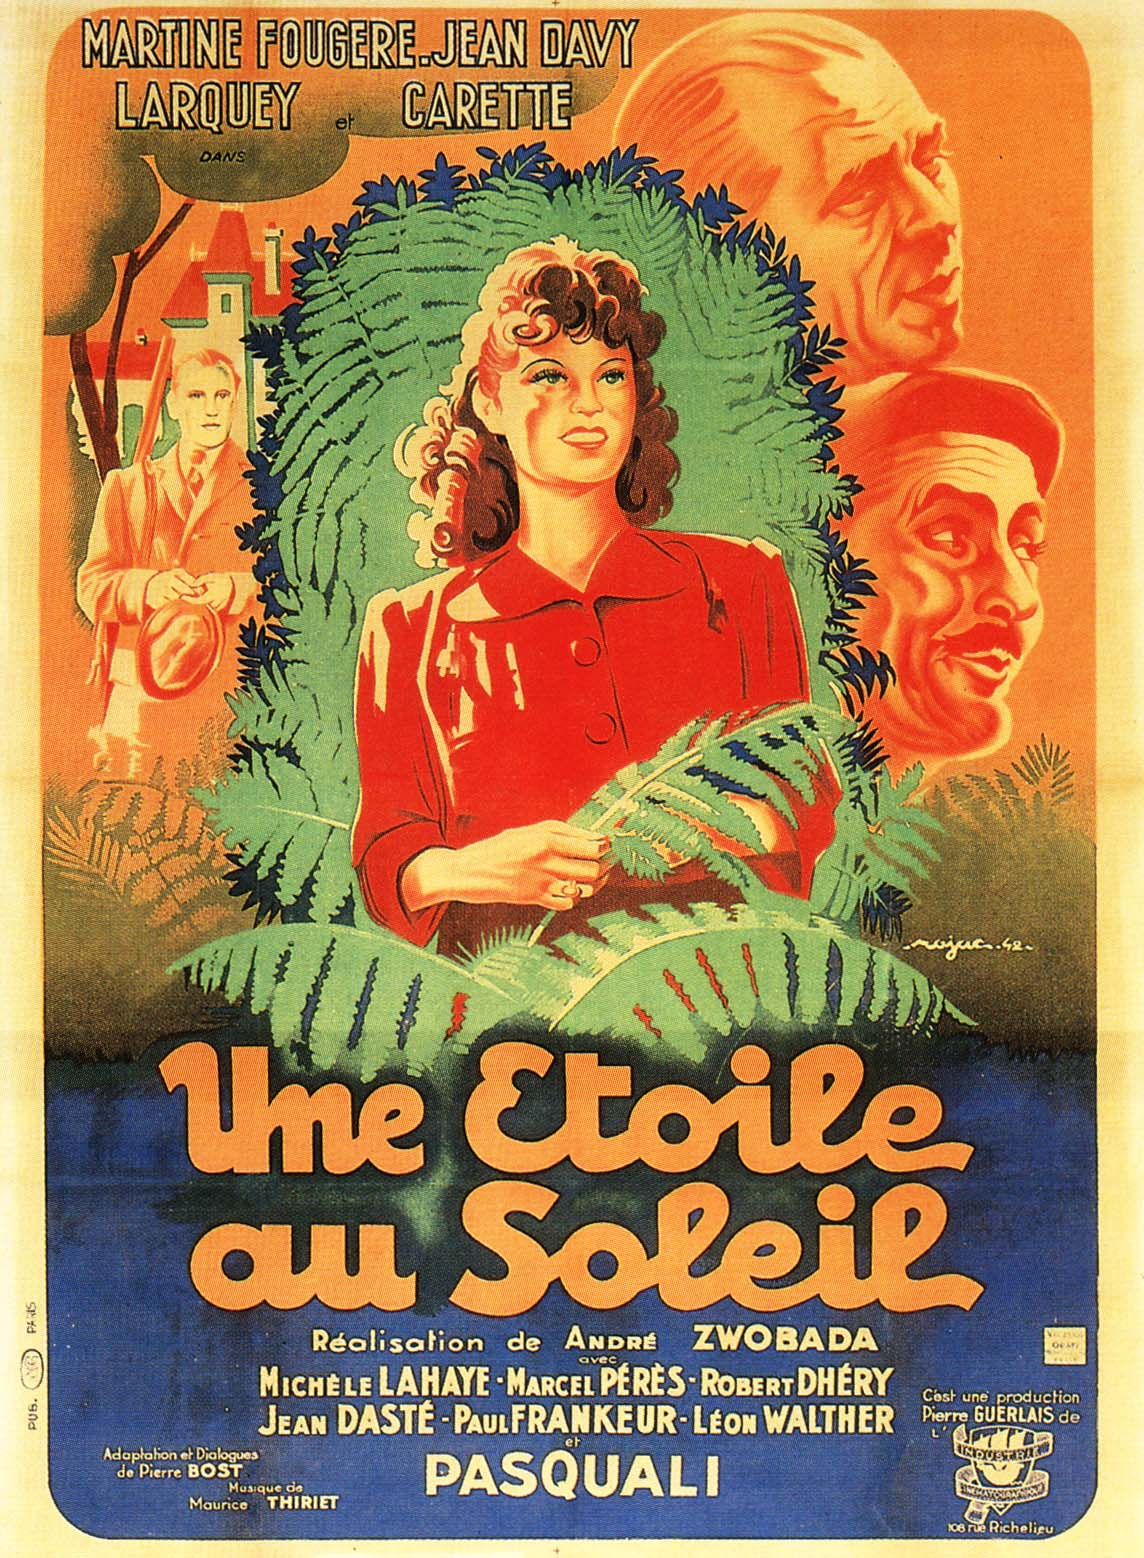 http://images.fan-de-cinema.com/affiches/large/db/51844.jpg